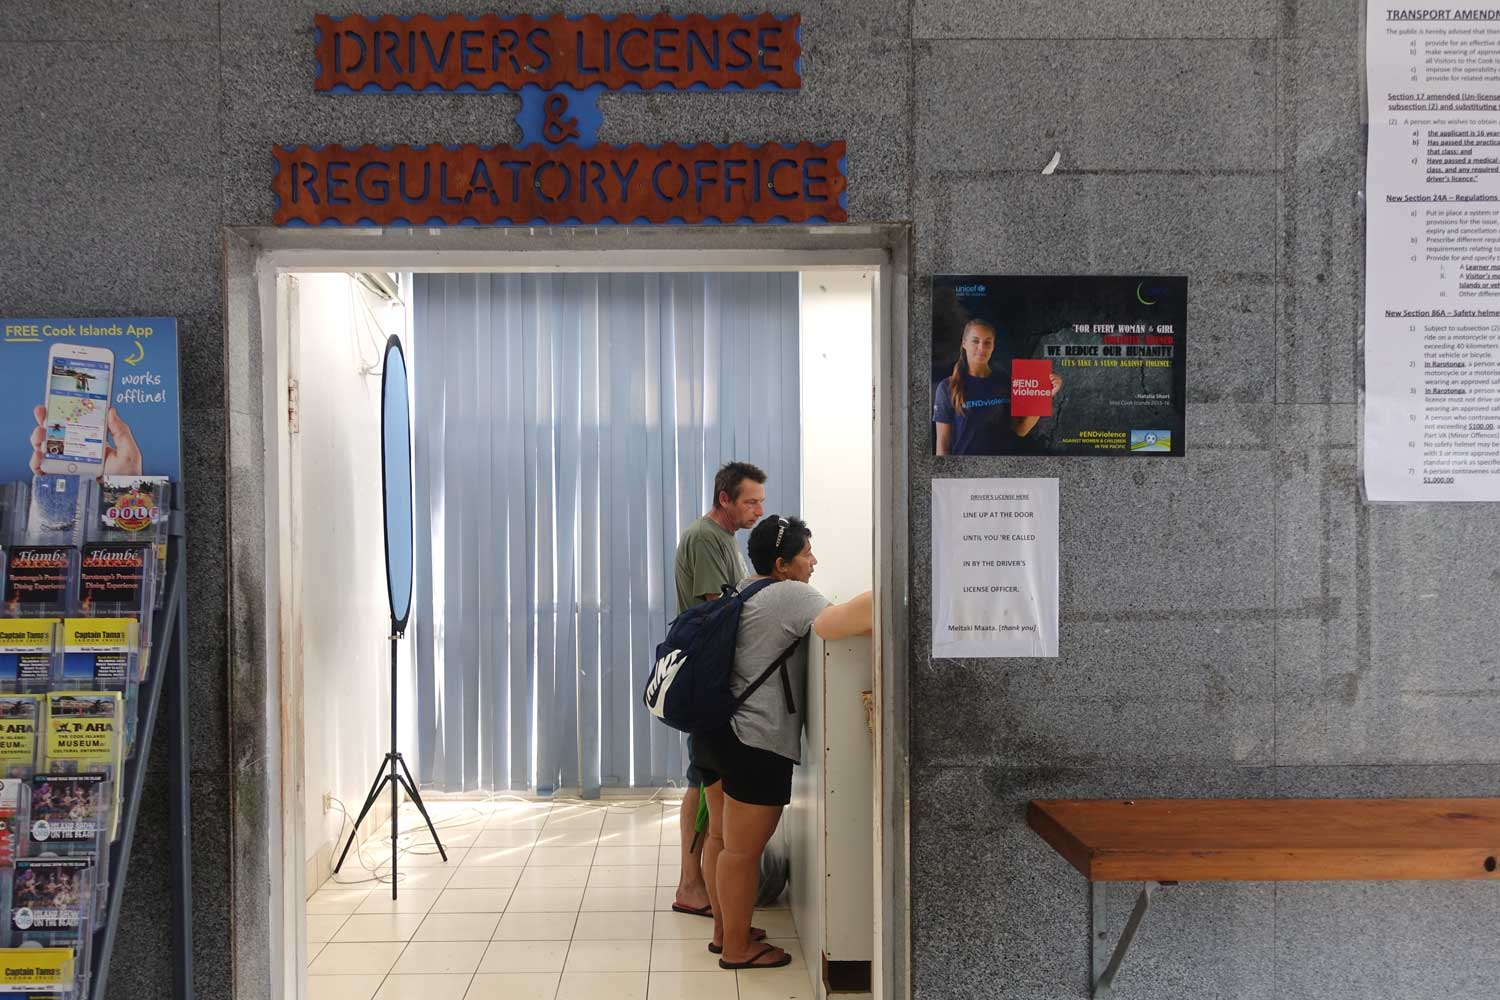 Cook Islands Drivers License office